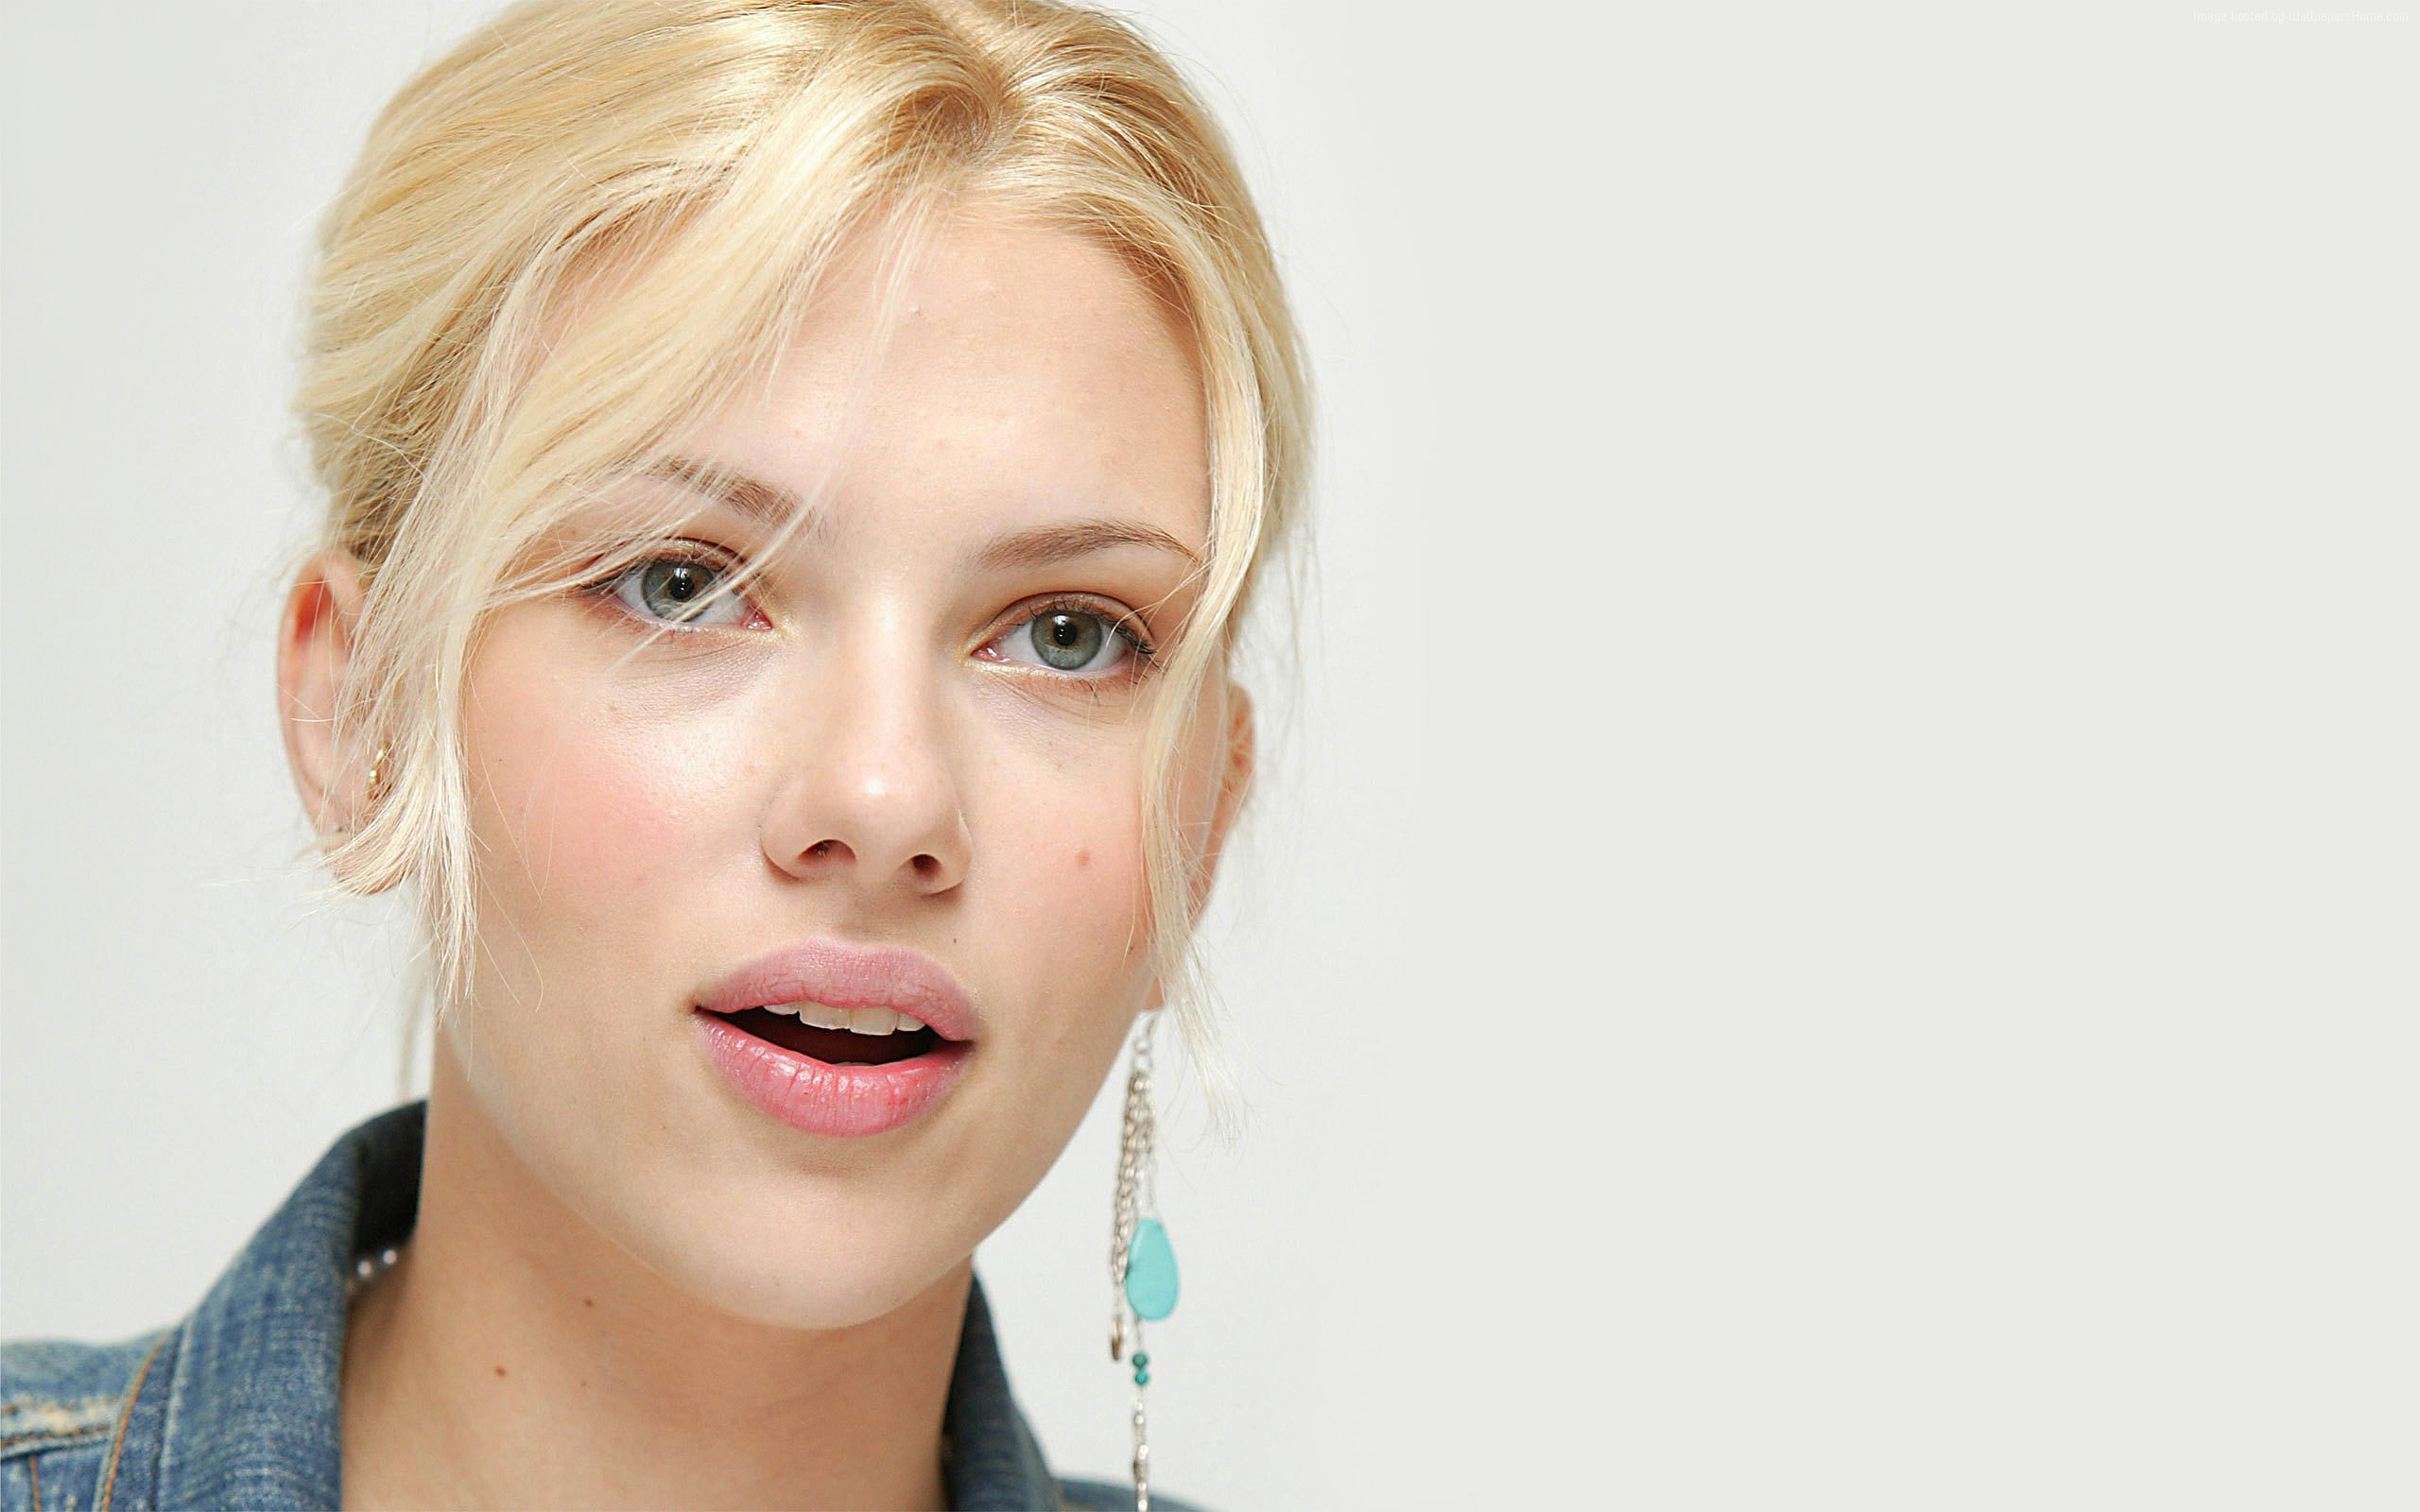 wonderful scarlett johansson smile face mobile background photos free hd desktop